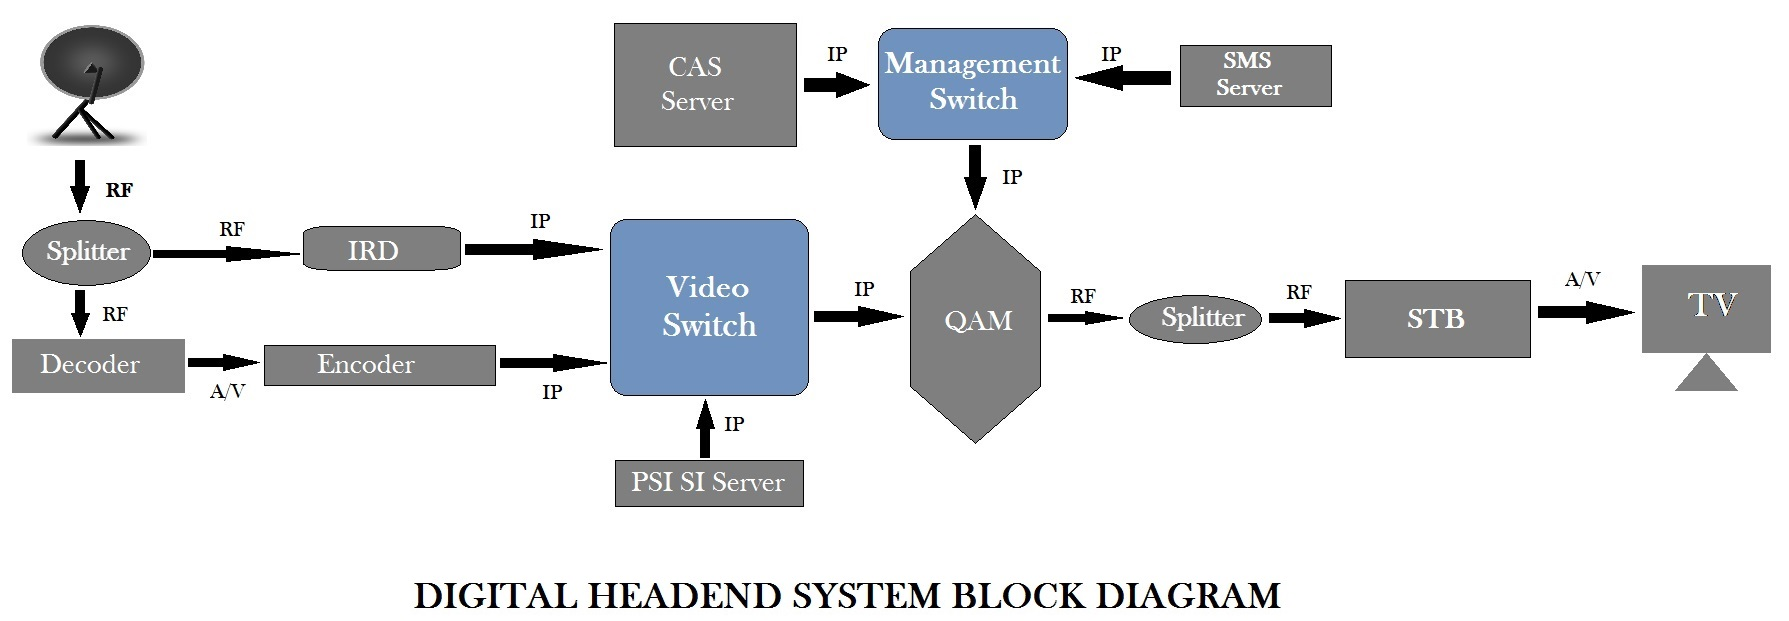 Digital Headend System Block Diagram FREEZING what is digital headend or cable tv headend system  at bayanpartner.co